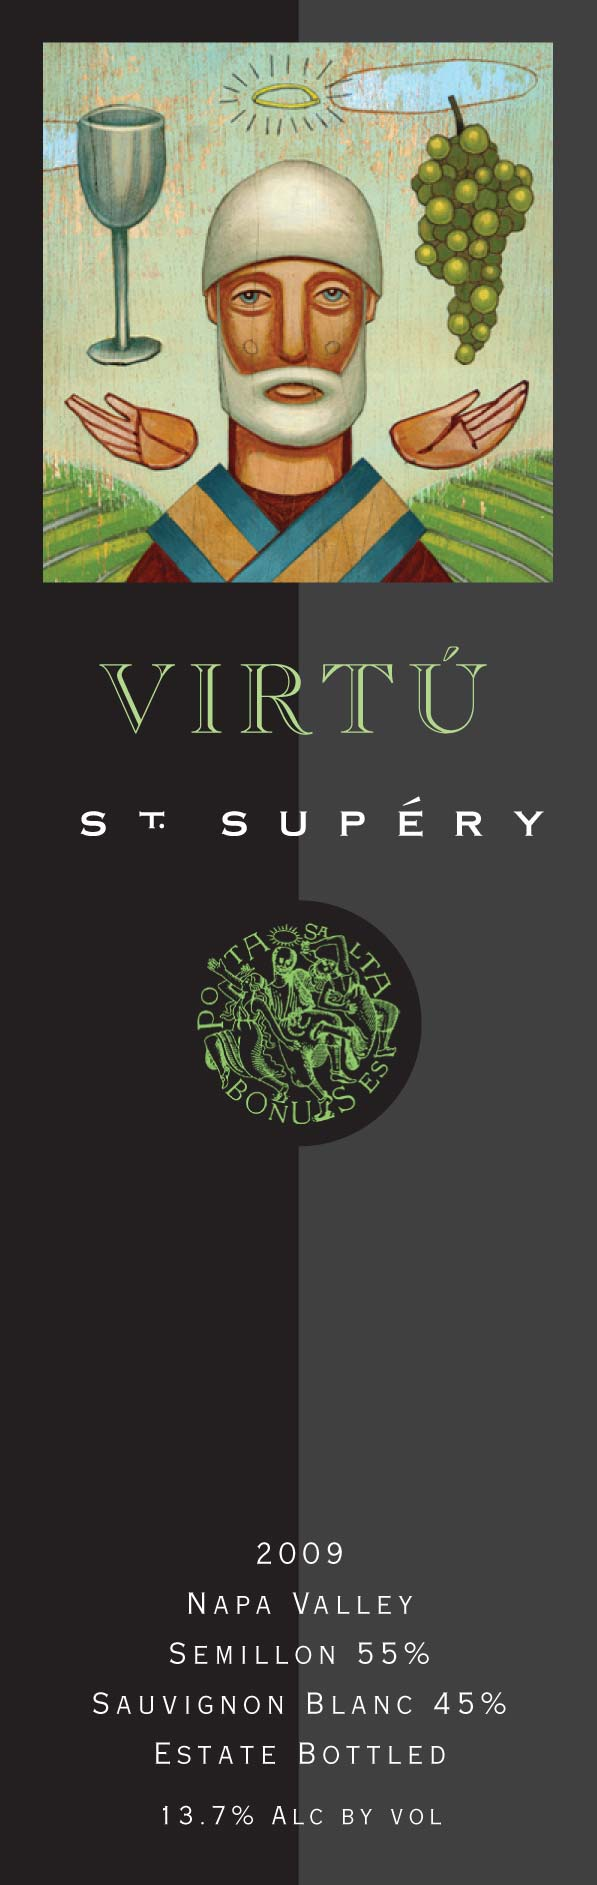 St. Supery Virtu Meritage White California White Wine